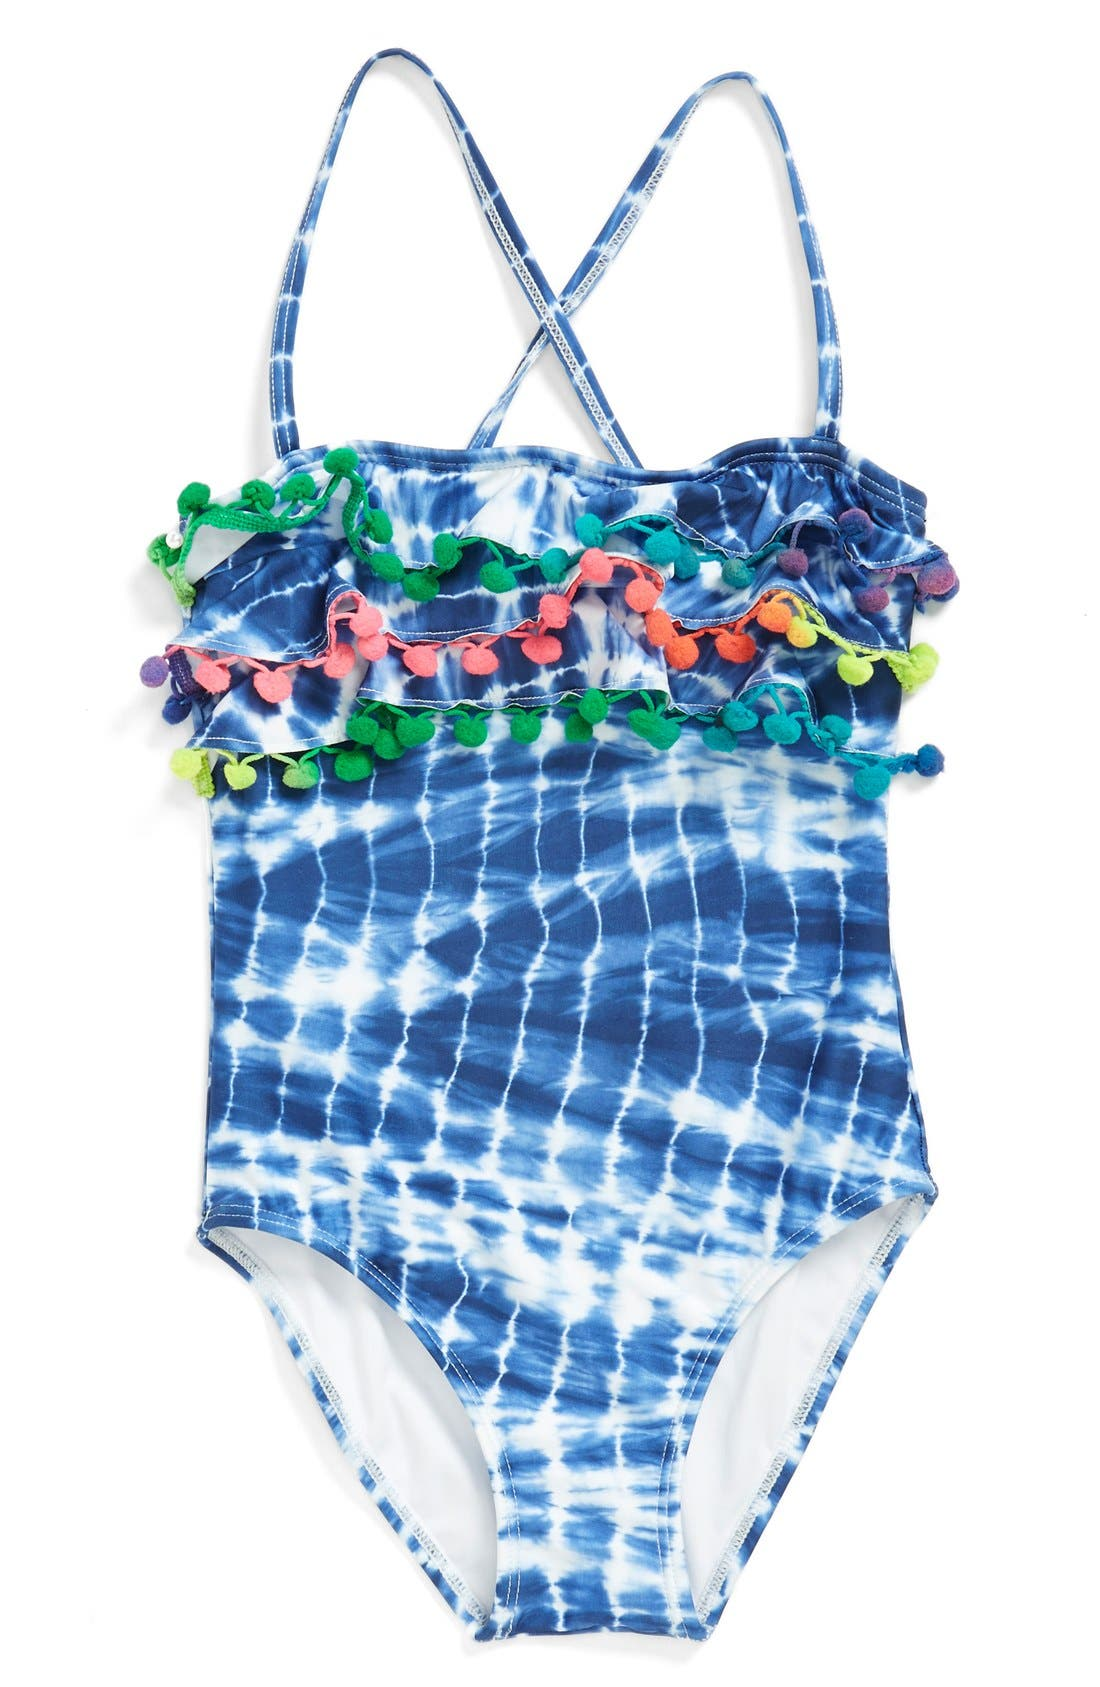 Alternate Image 1 Selected - PilyQ One-Piece Swimsuit (Toddler Girls) (Online Only)